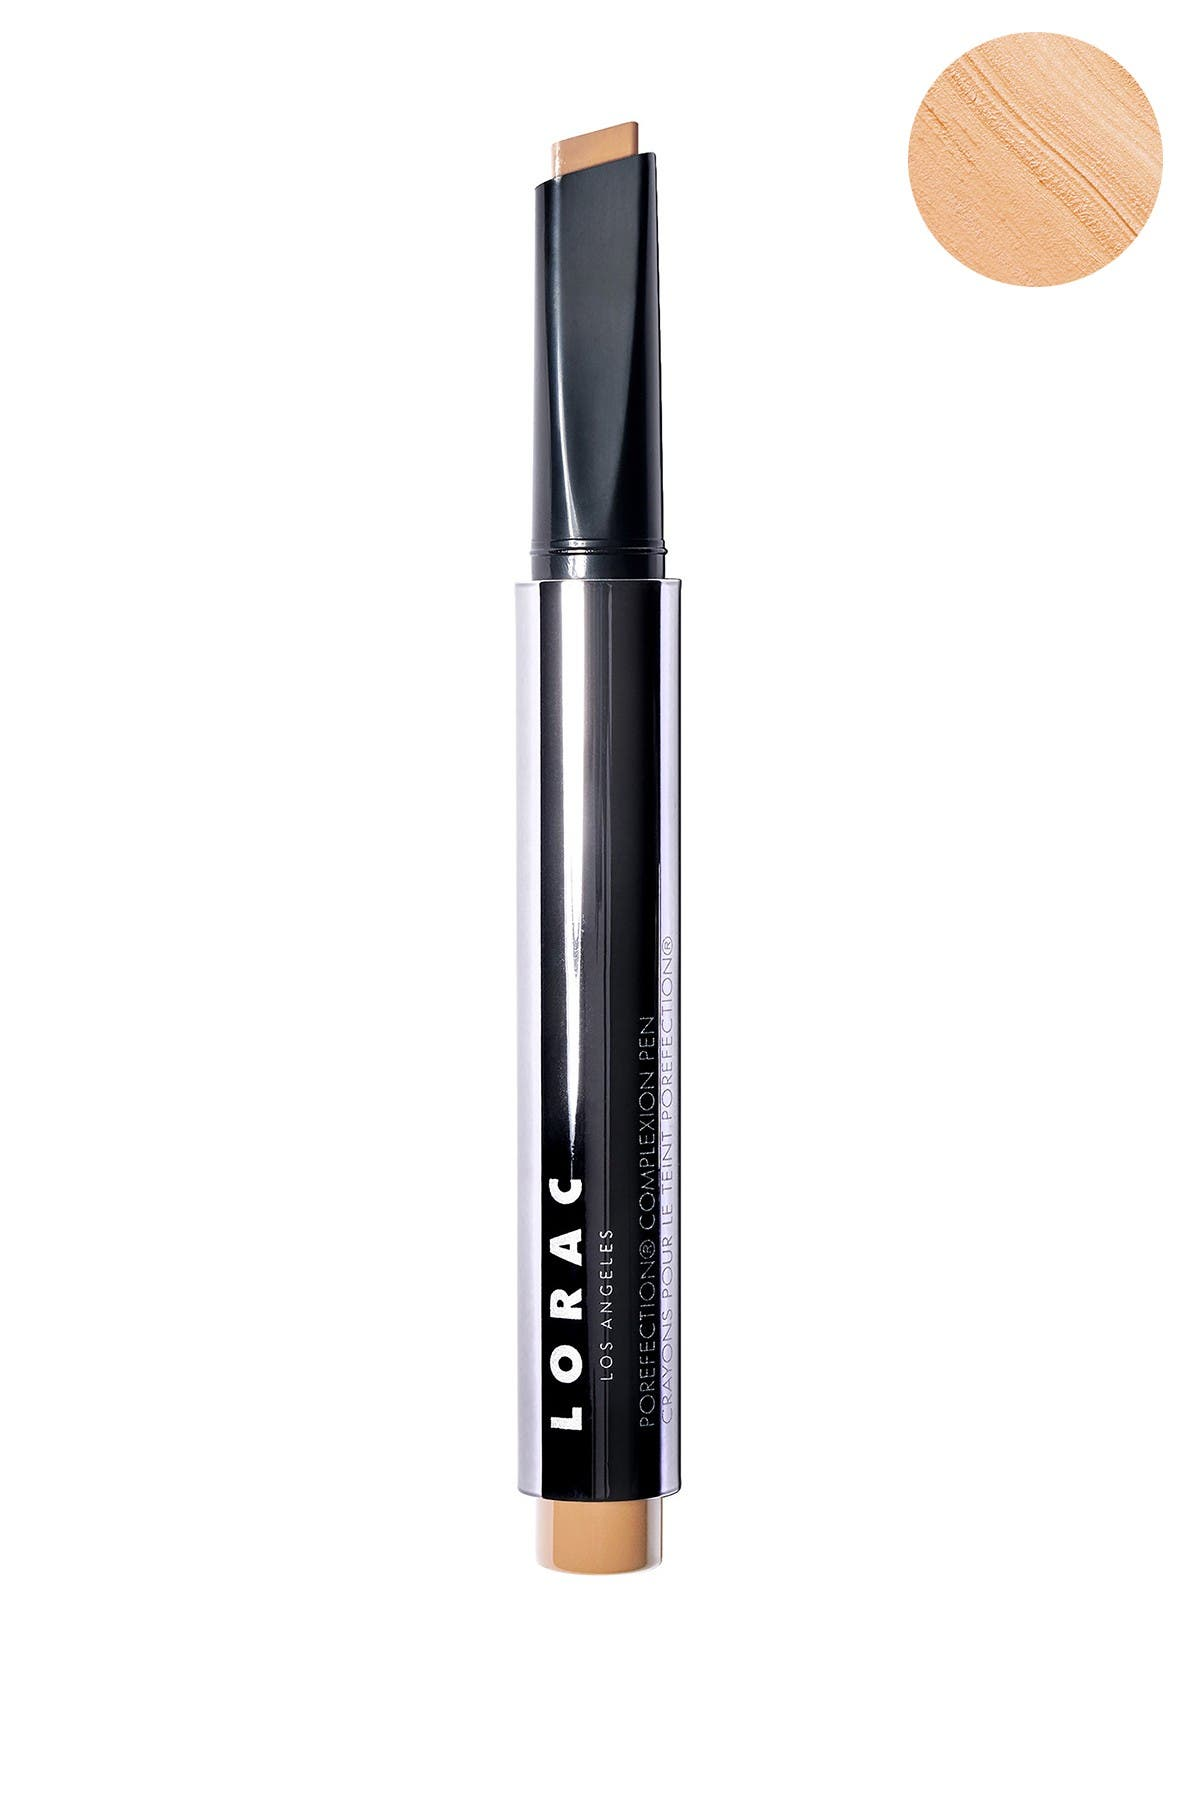 Image of LORAC POREfection Complexion Pen CP3 - Warm